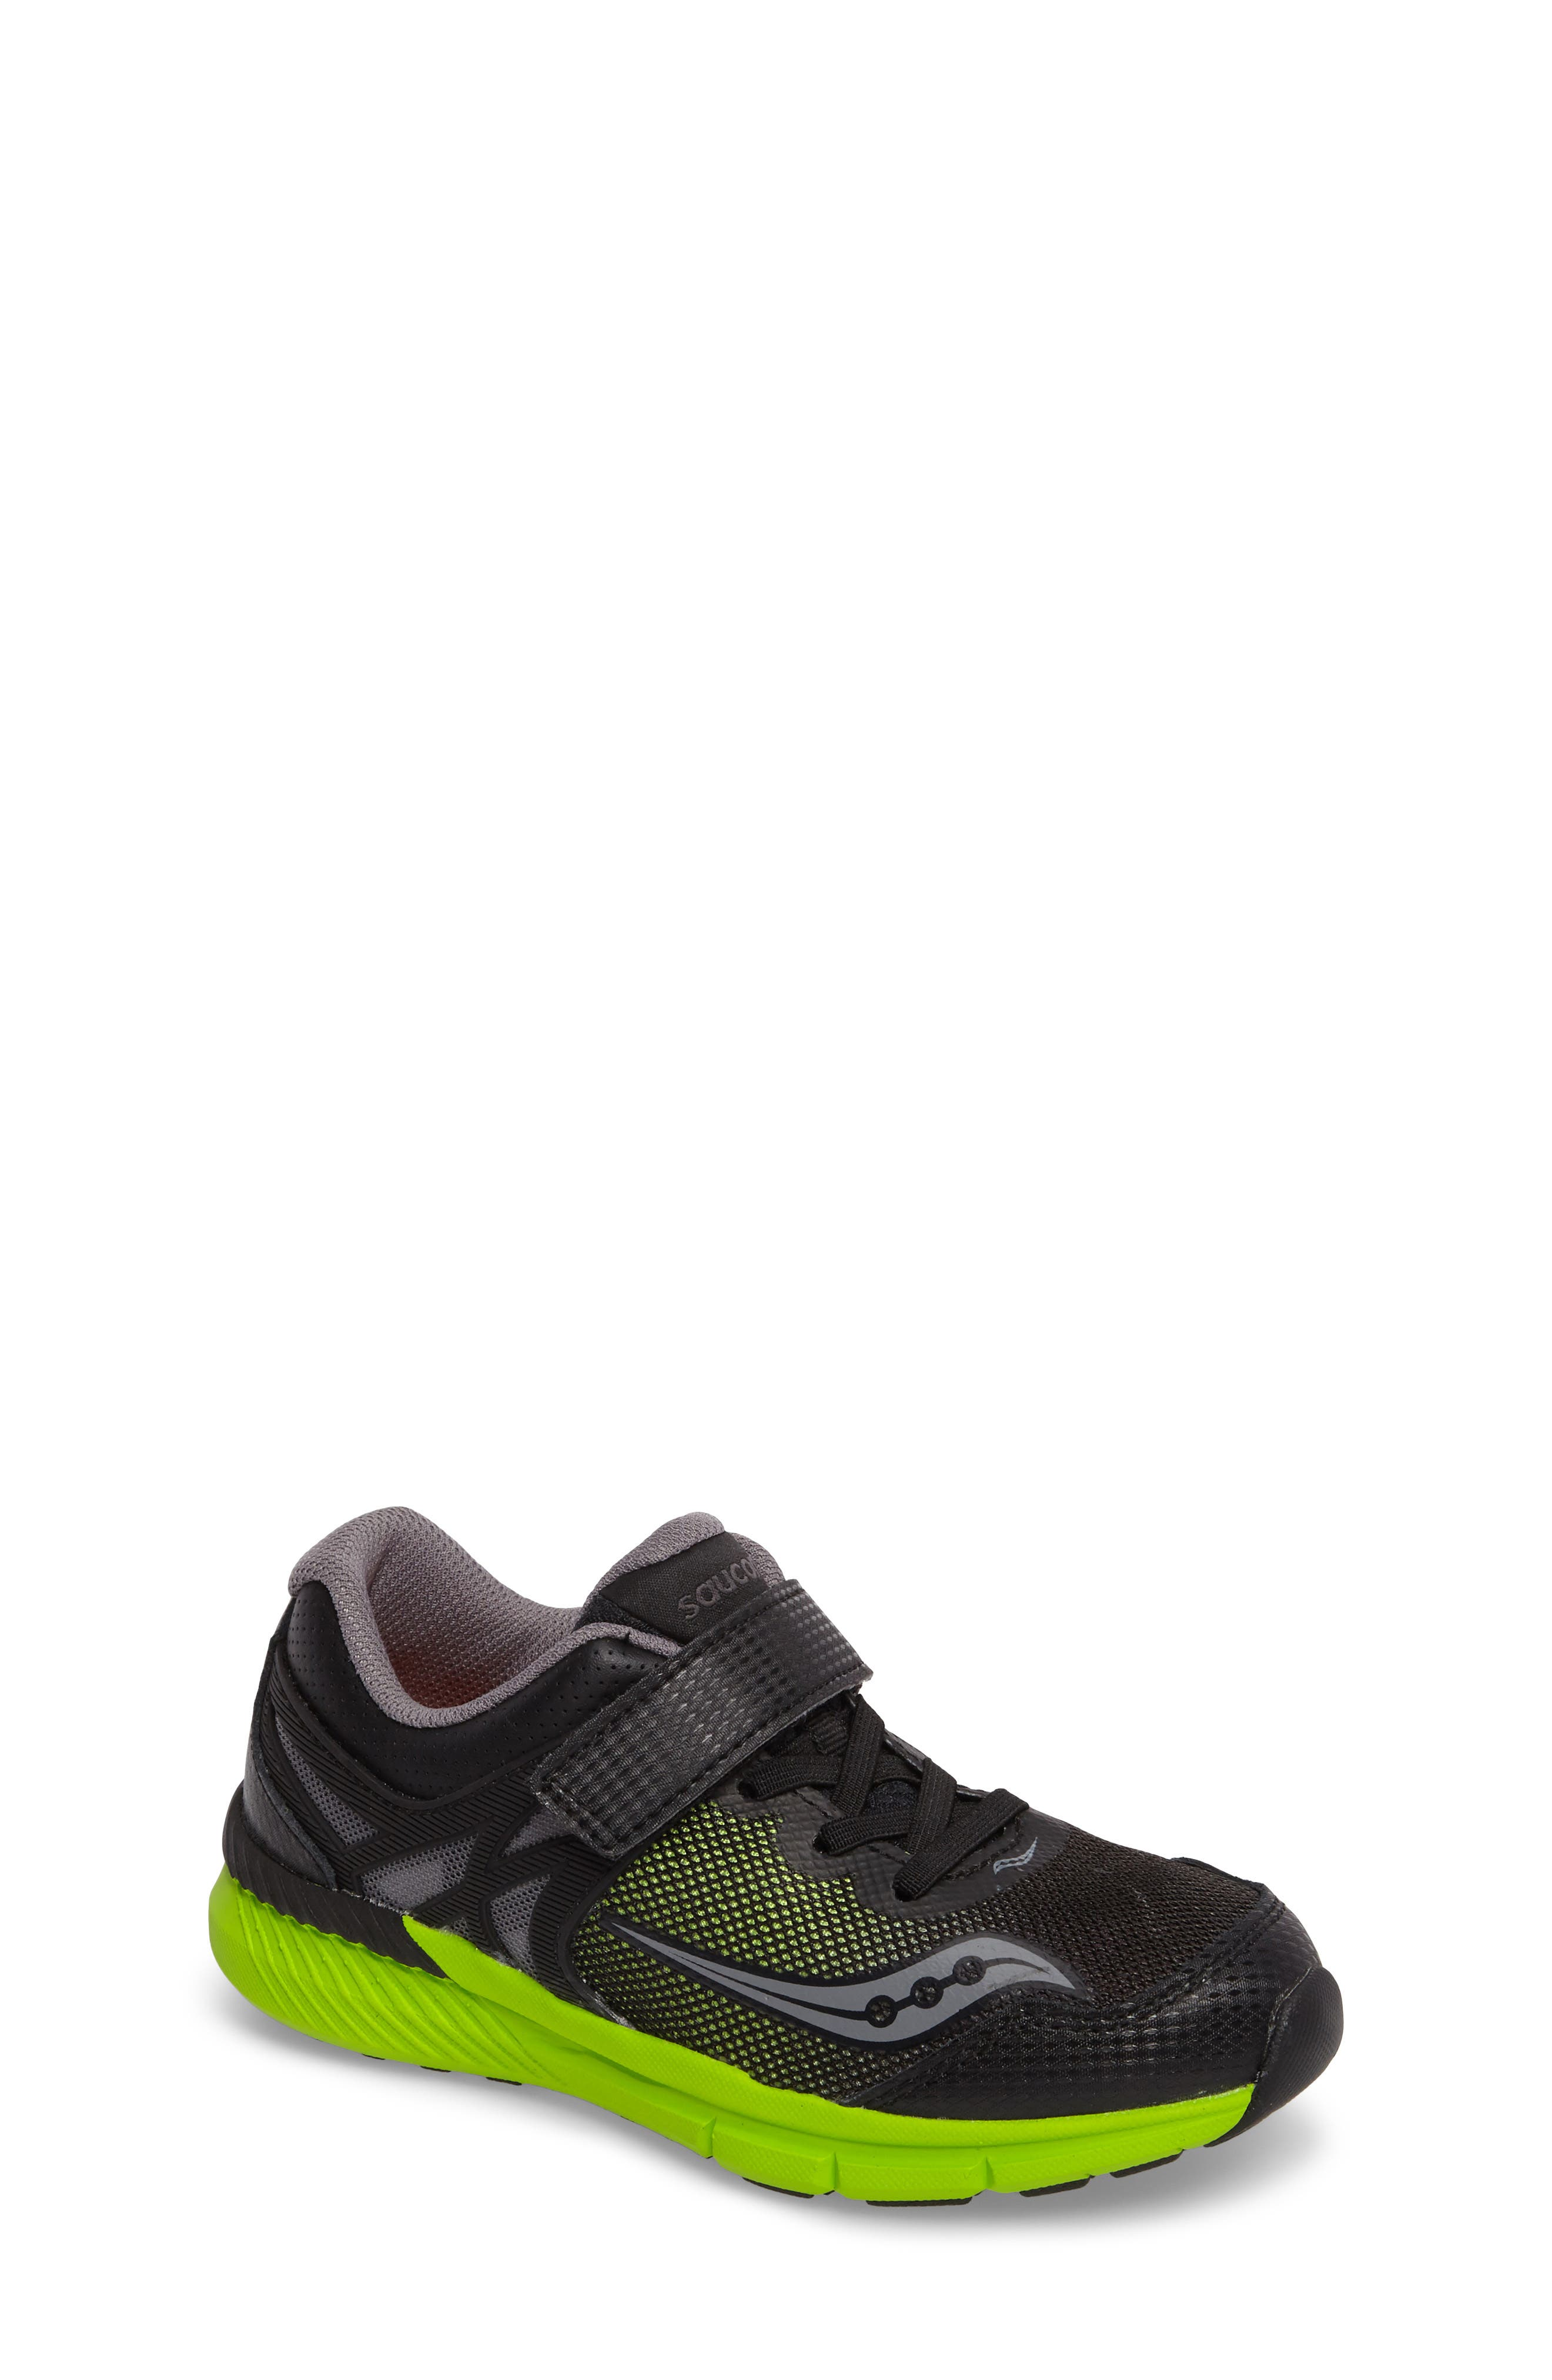 Velocity A/C Sneaker,                             Main thumbnail 1, color,                             Black/ Green